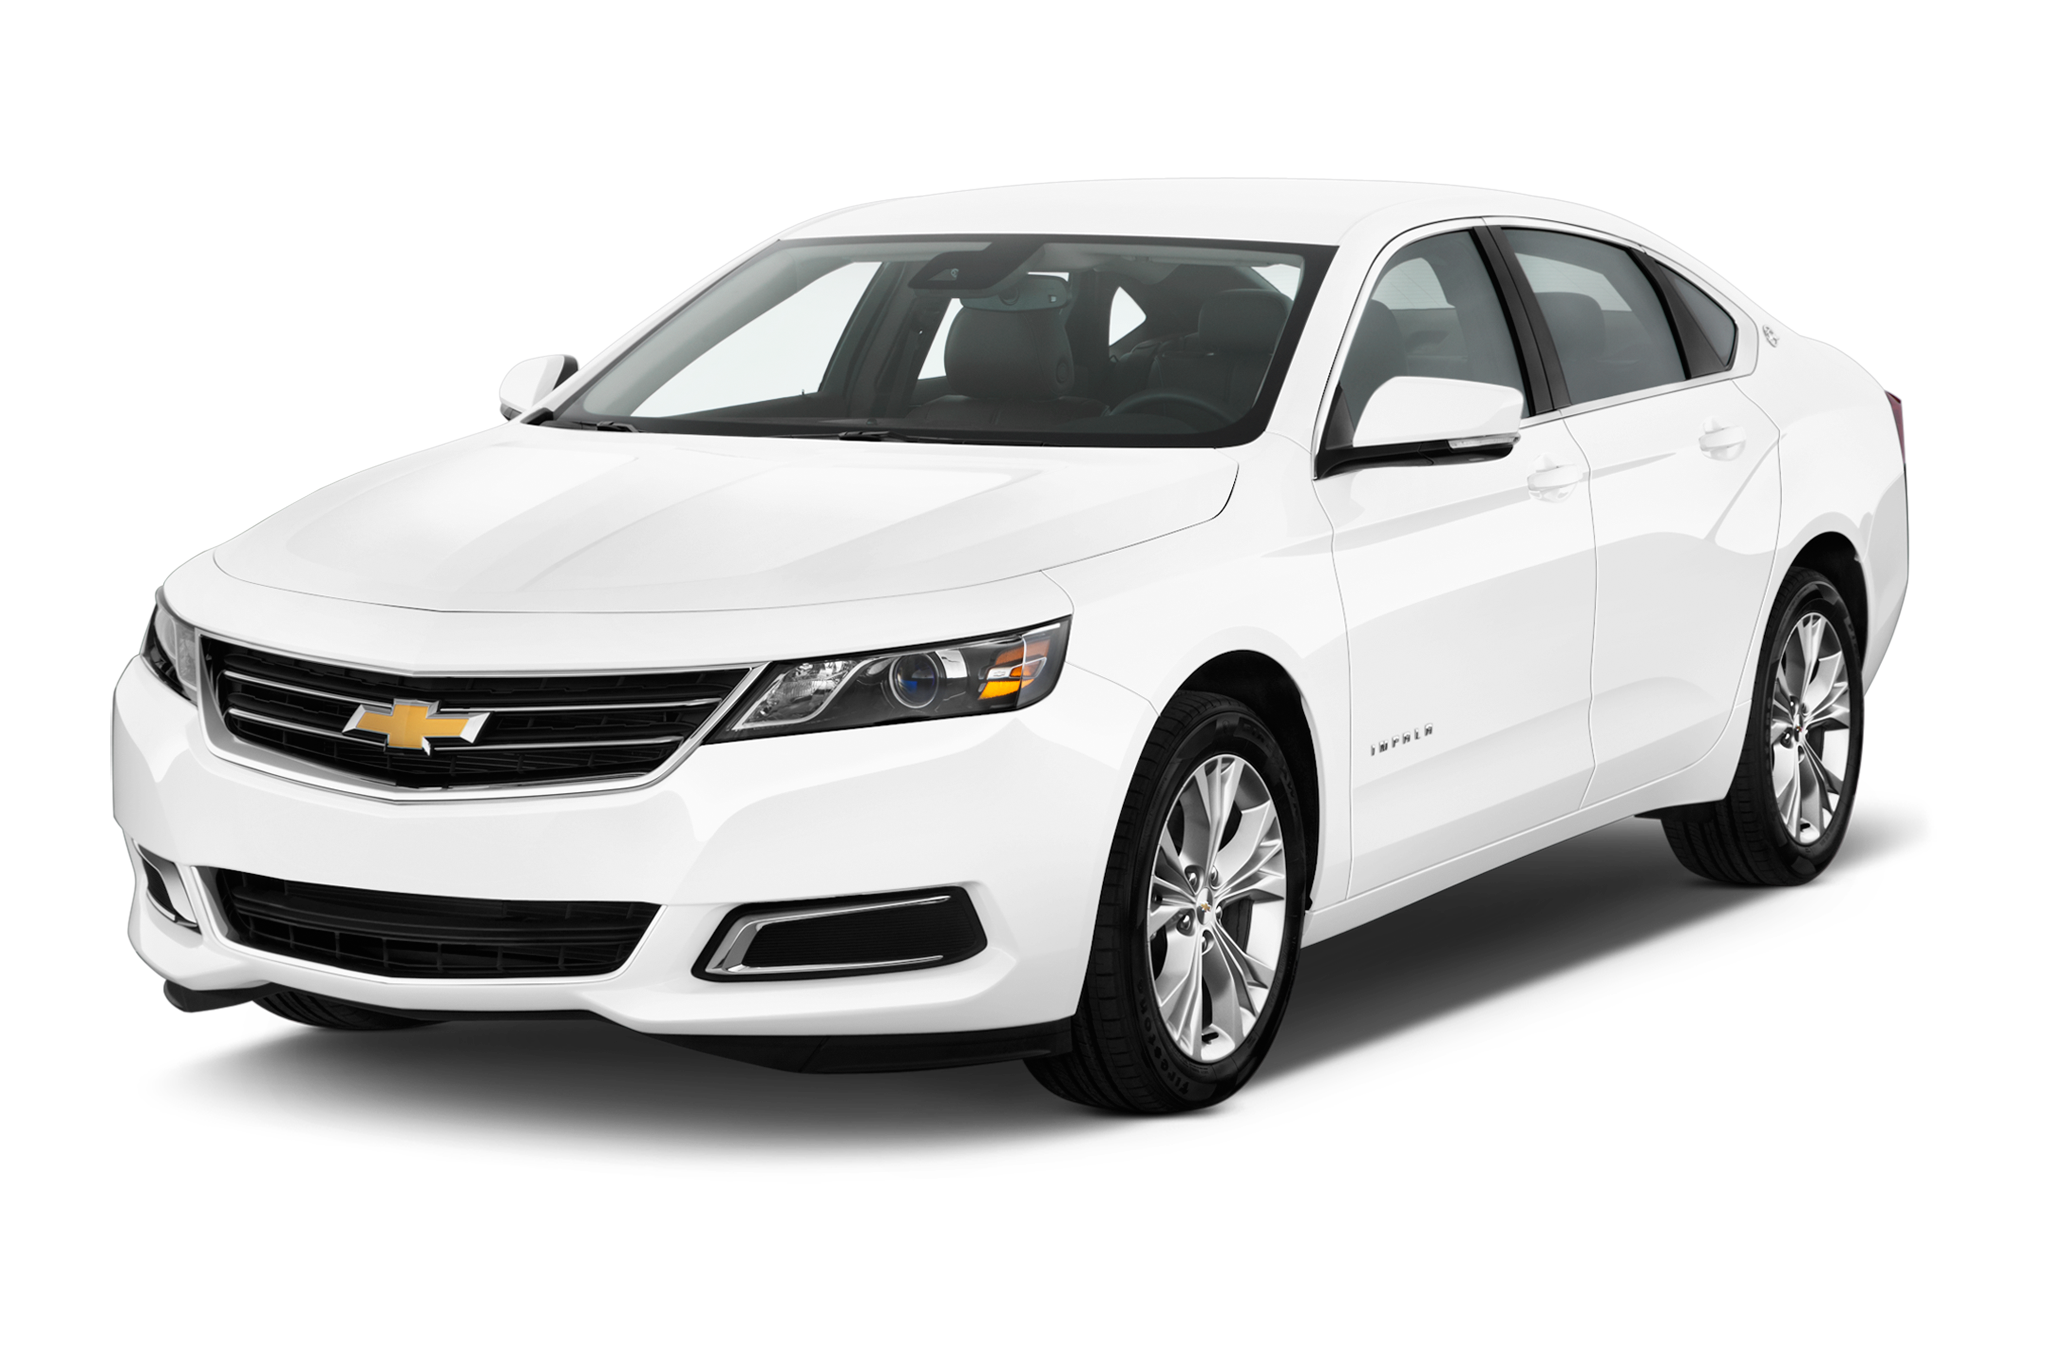 Chevrolet cars PNG images free download.